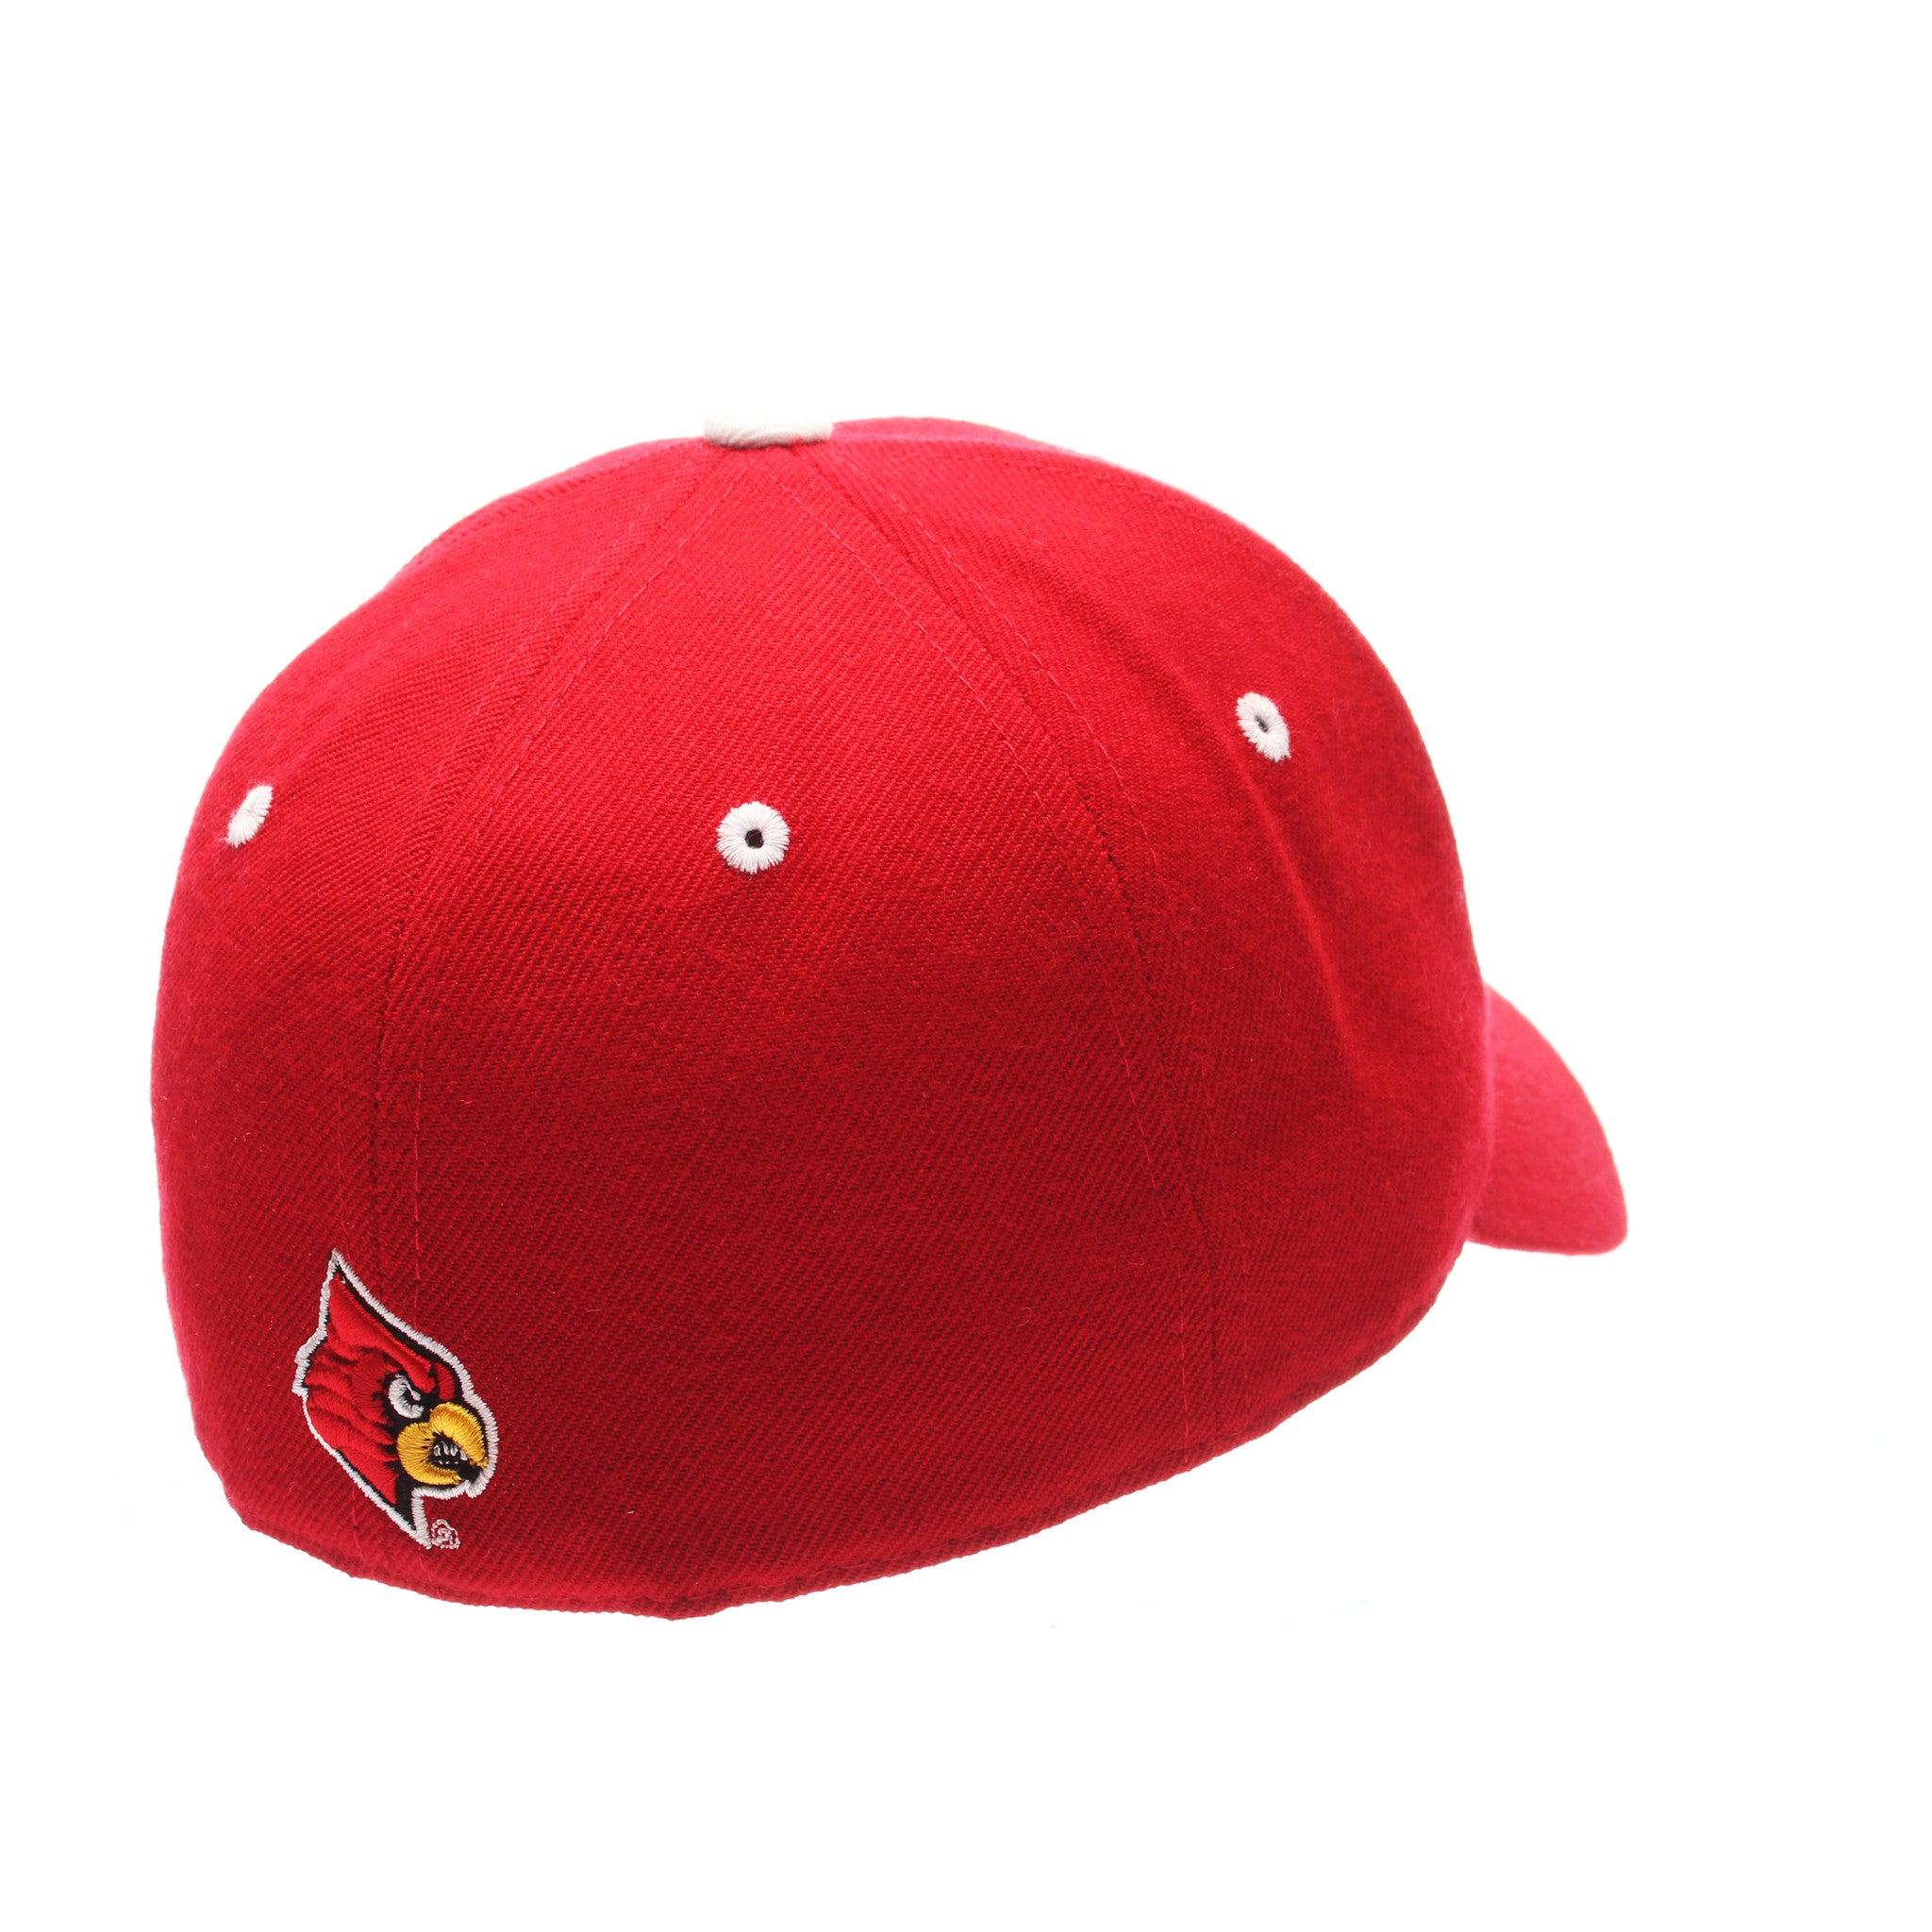 Louisville DH Standard (Low) (L) Red Zwool Fitted hats by Zephyr